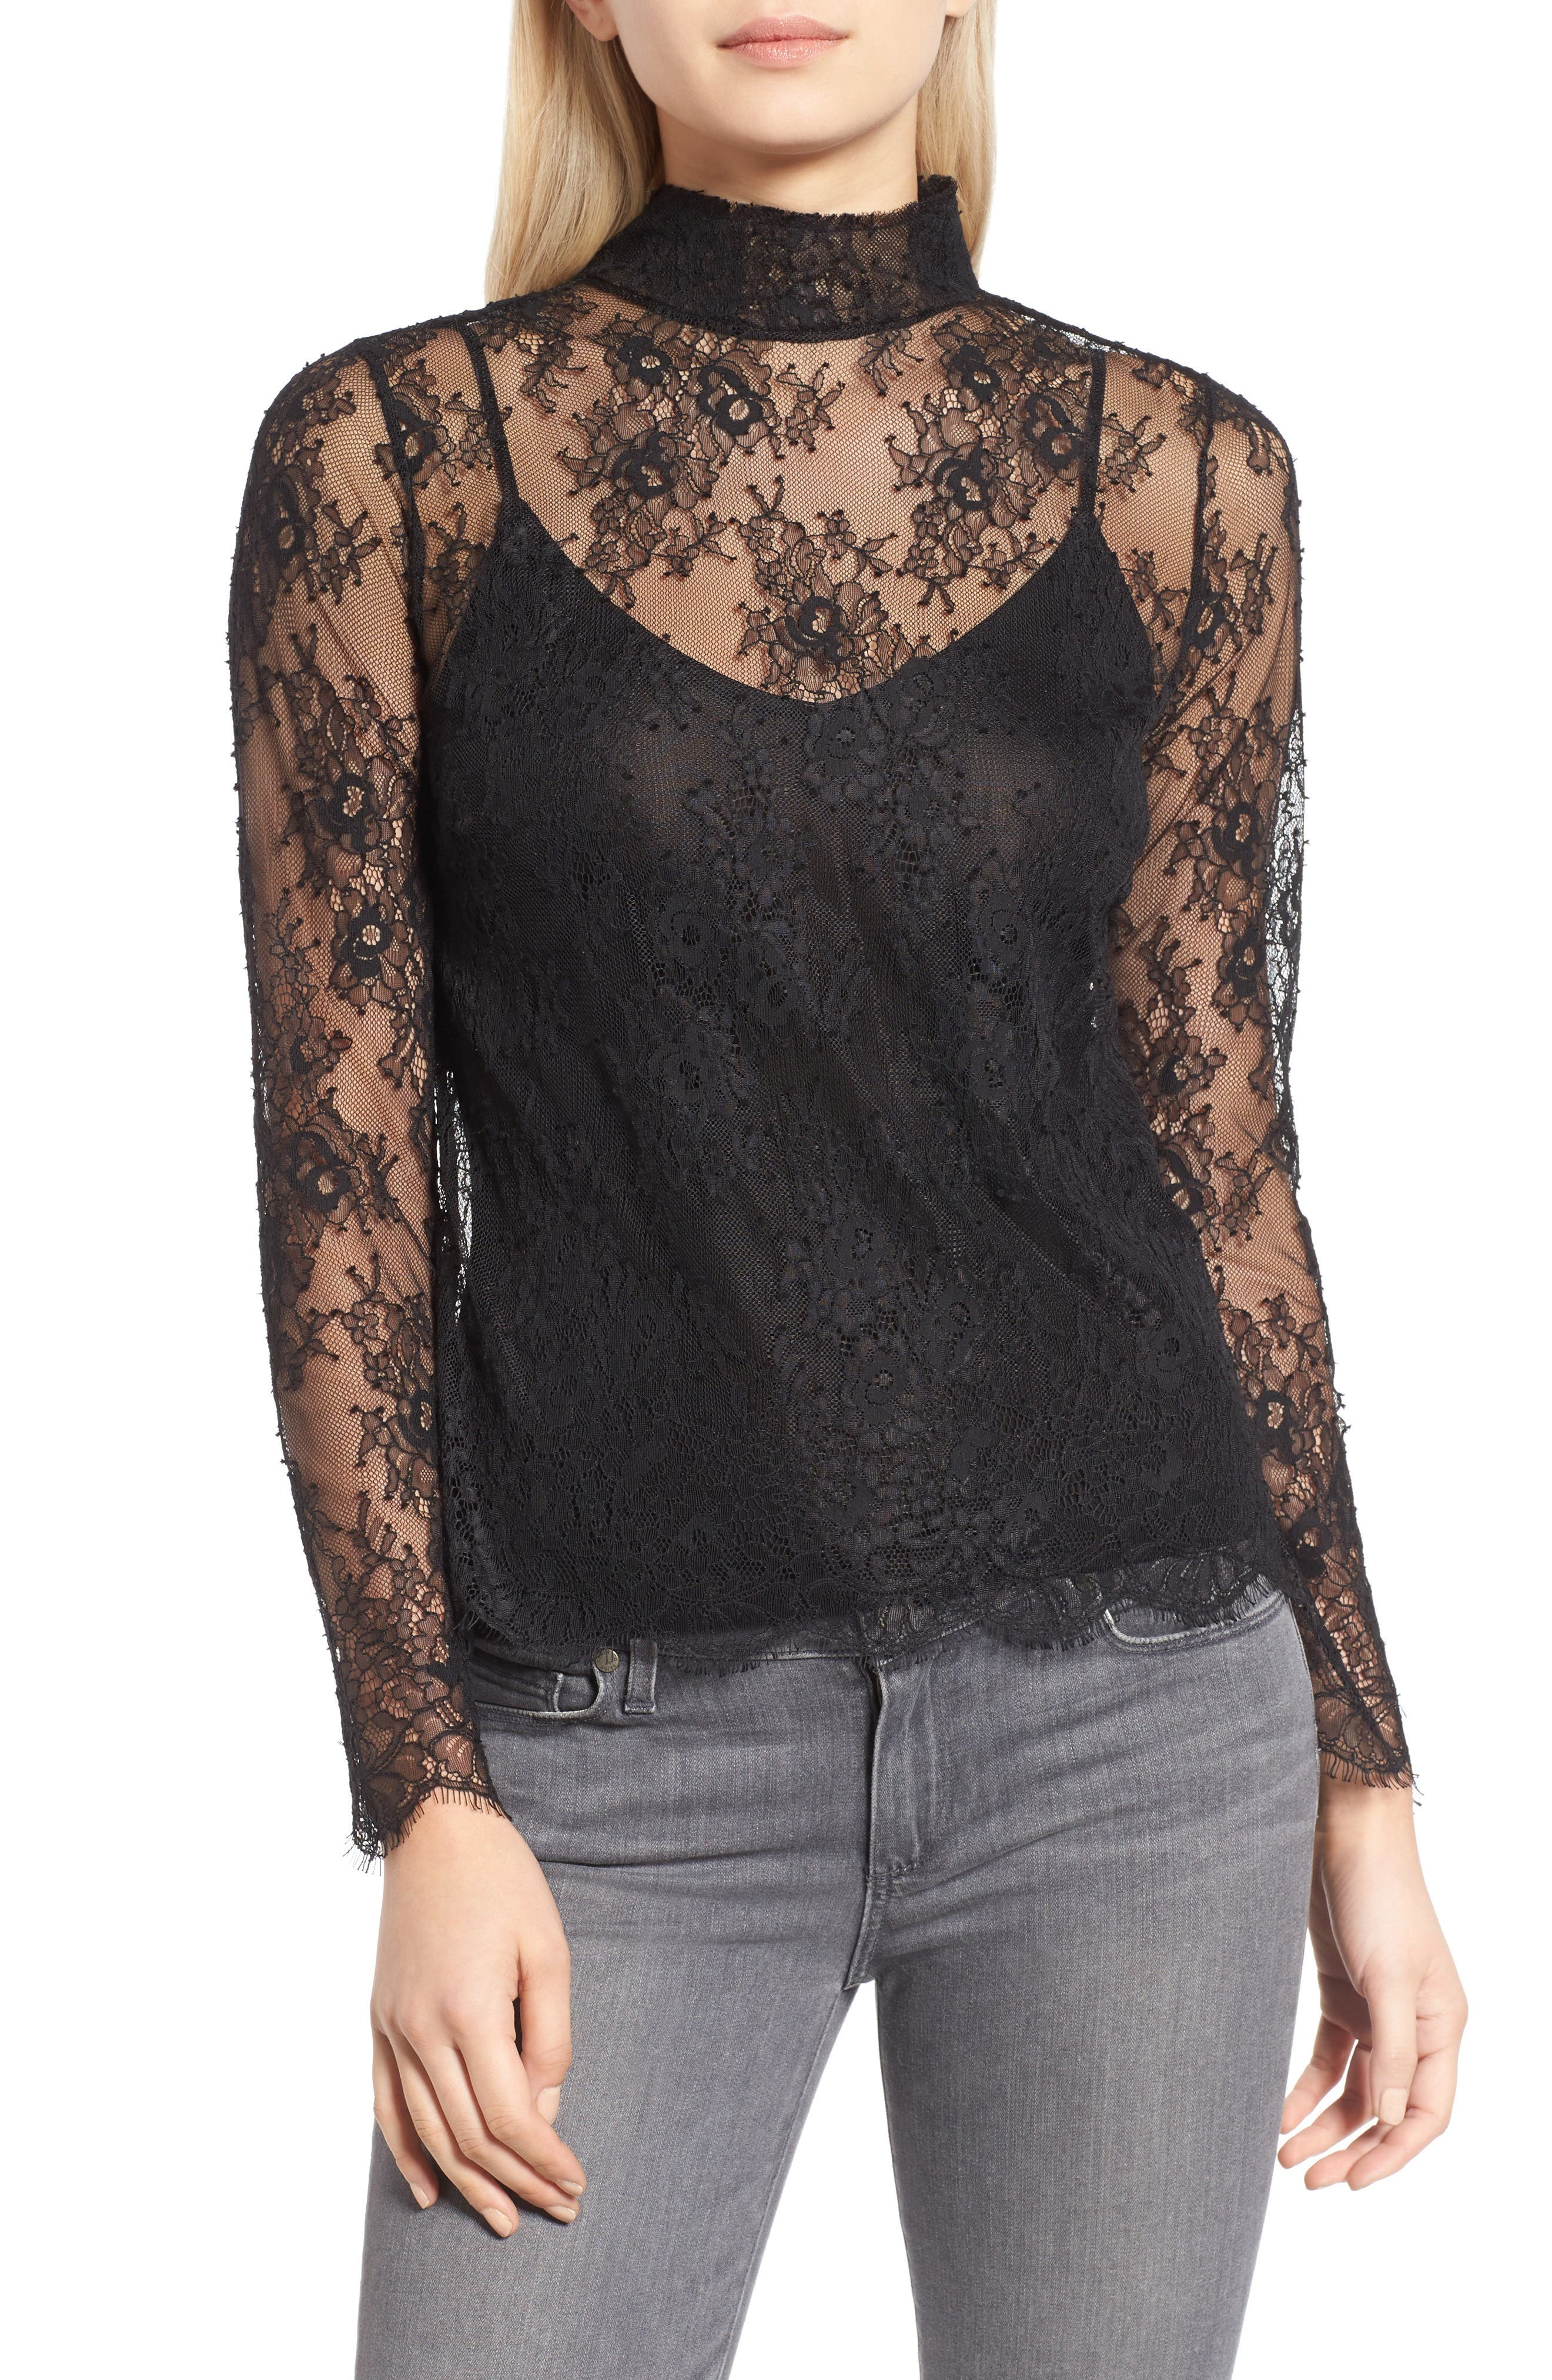 Alternate Image 1 Selected - Chelsea28 Sheer Lace Top